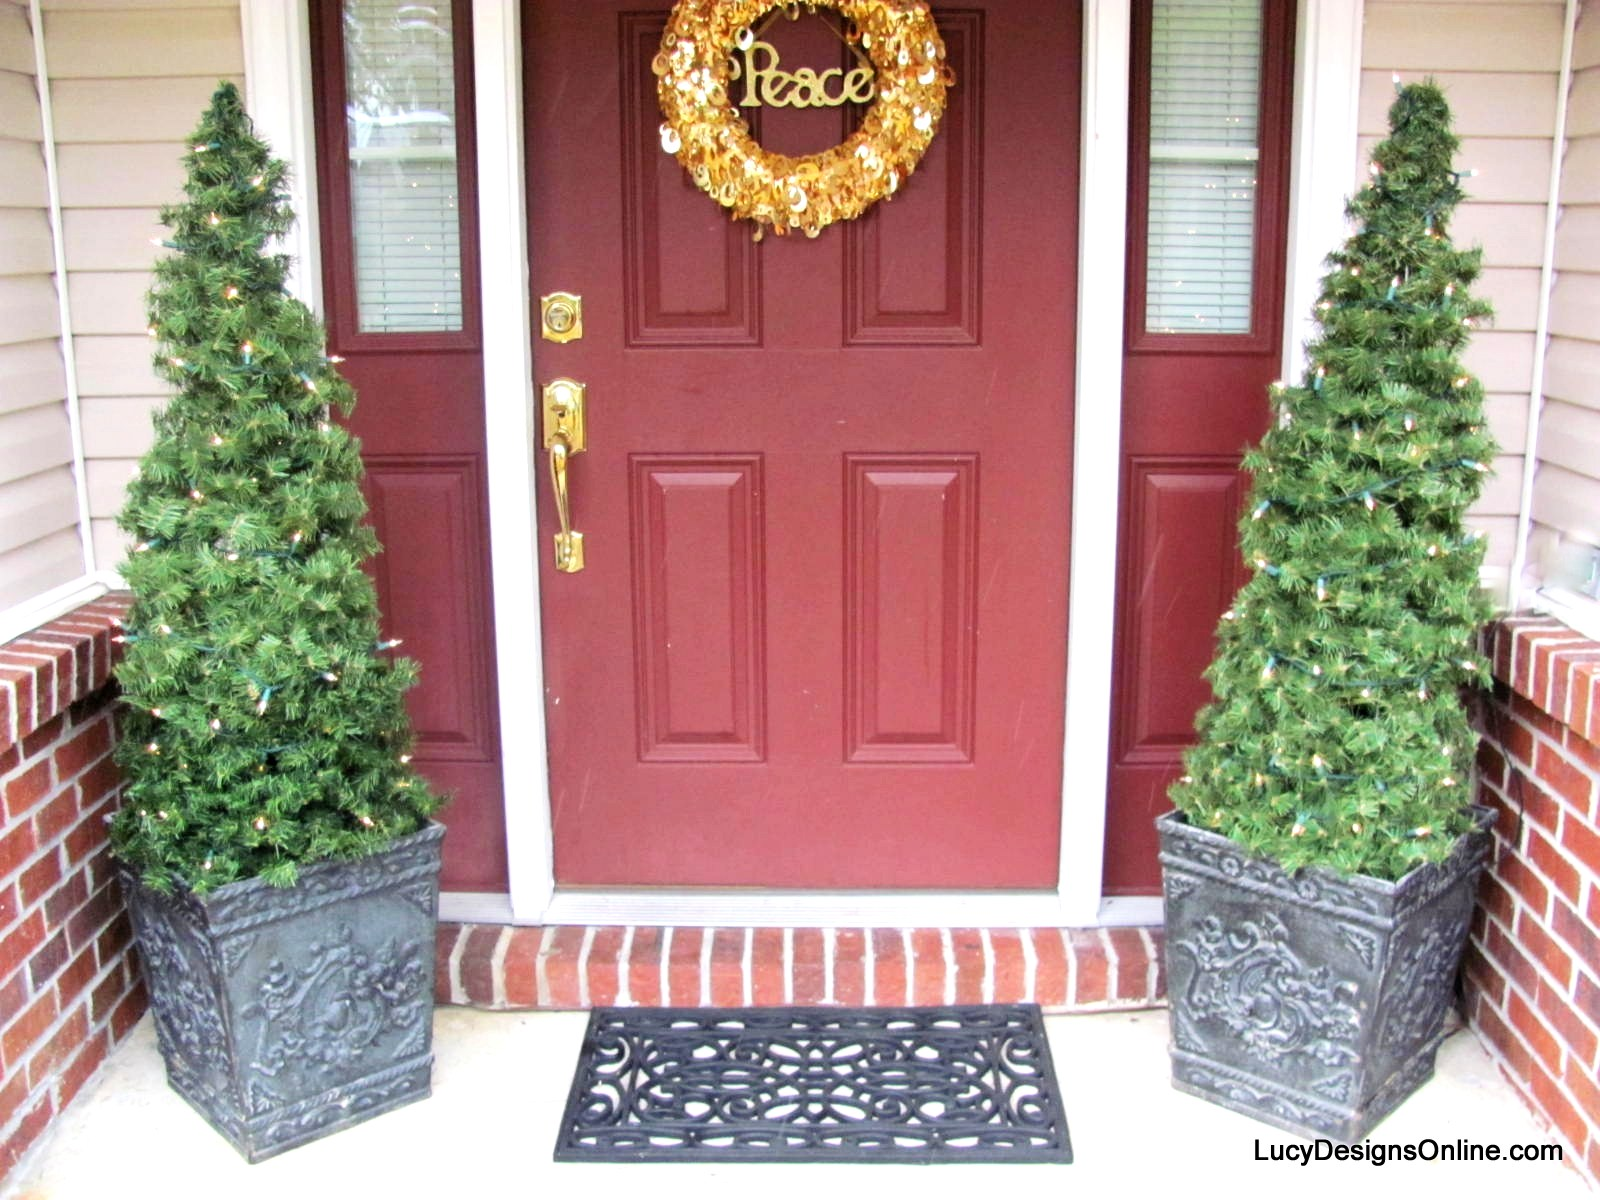 Diy Tomato Cage And Garland Topiary Christmas Trees Lucy